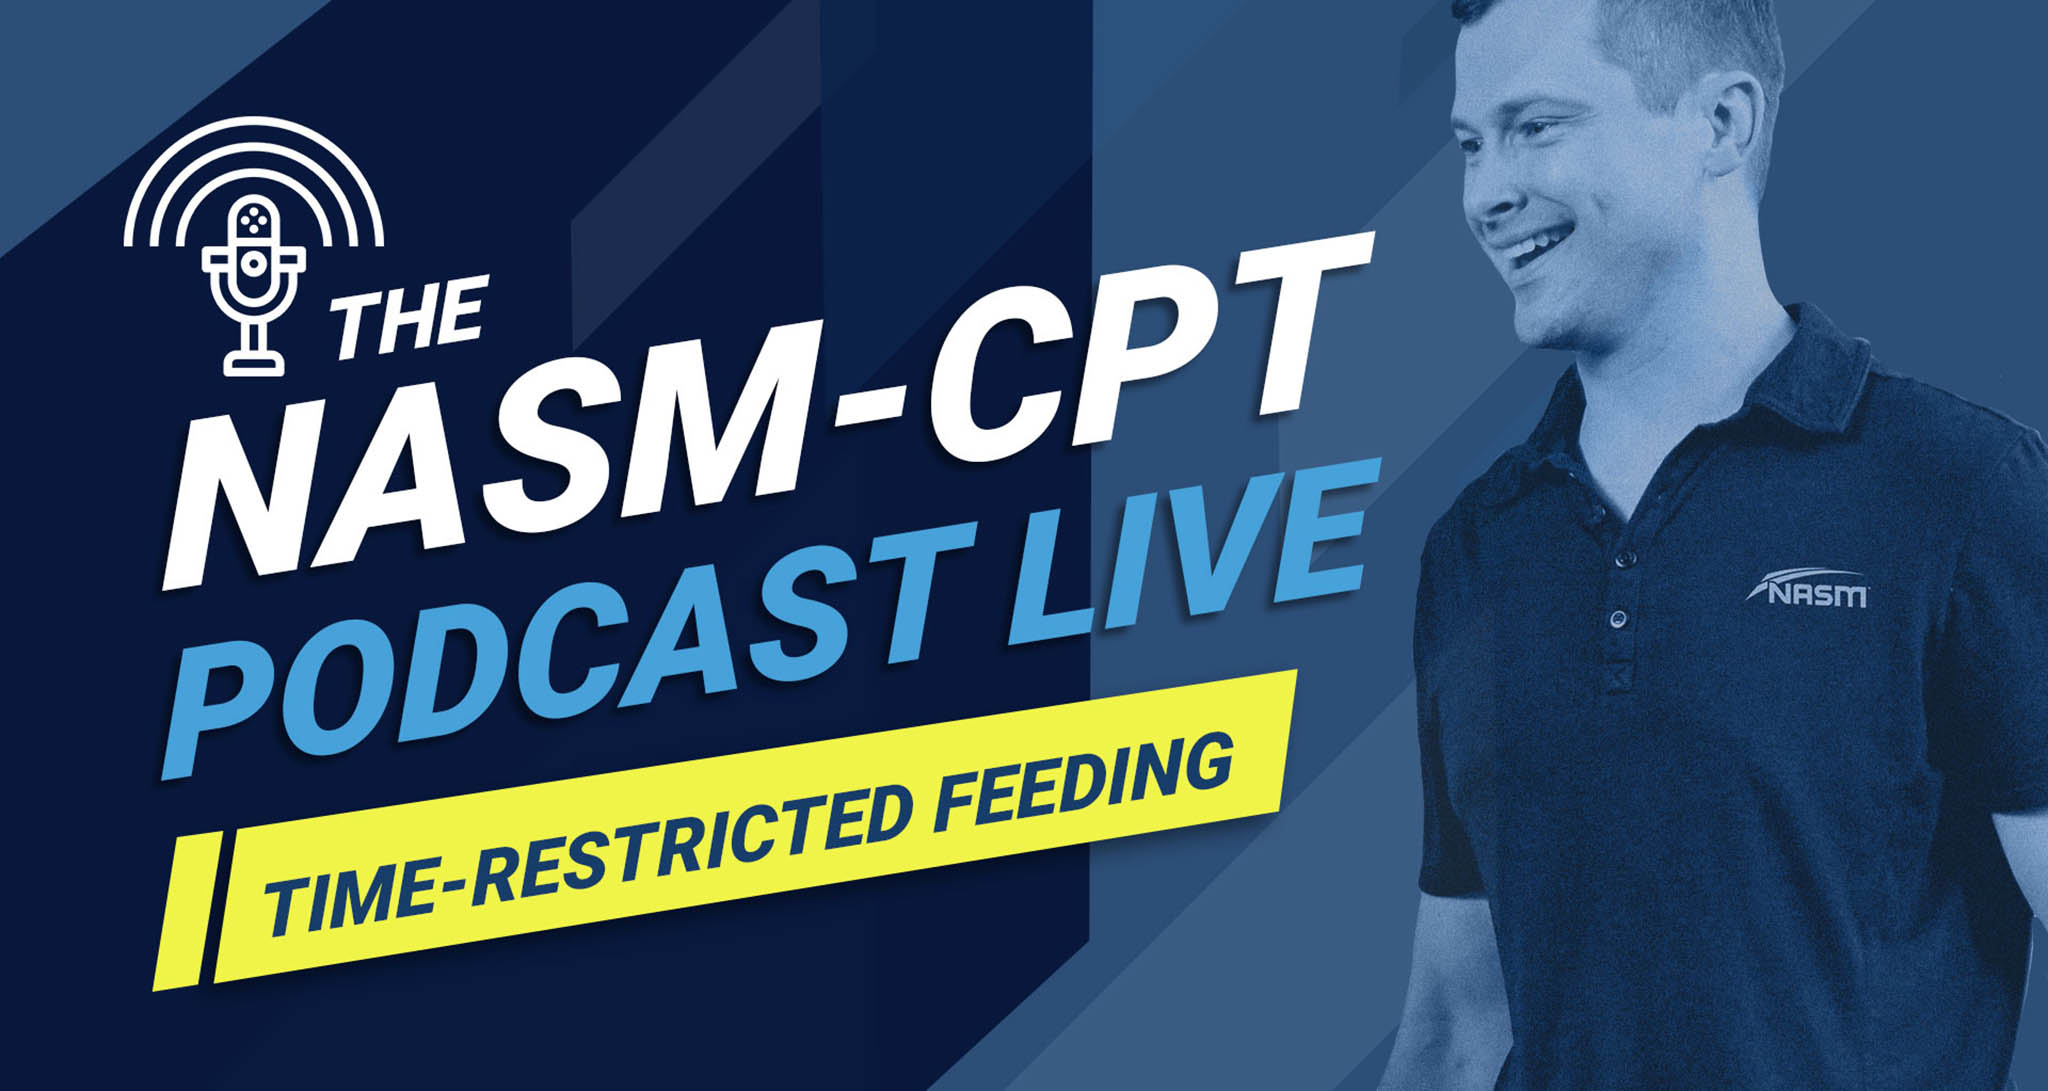 restricted feeding episode banner